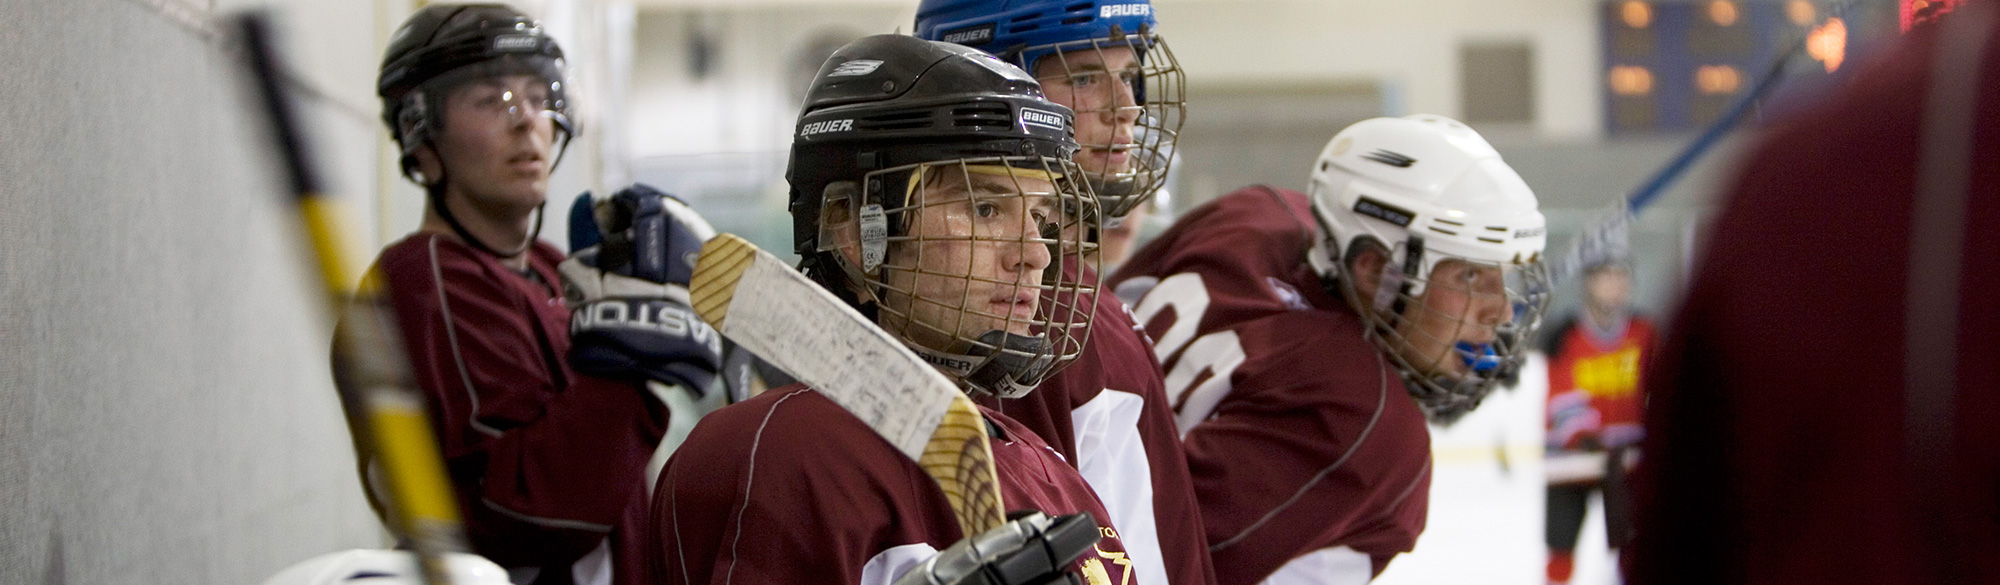 College of Charleston Hockey team